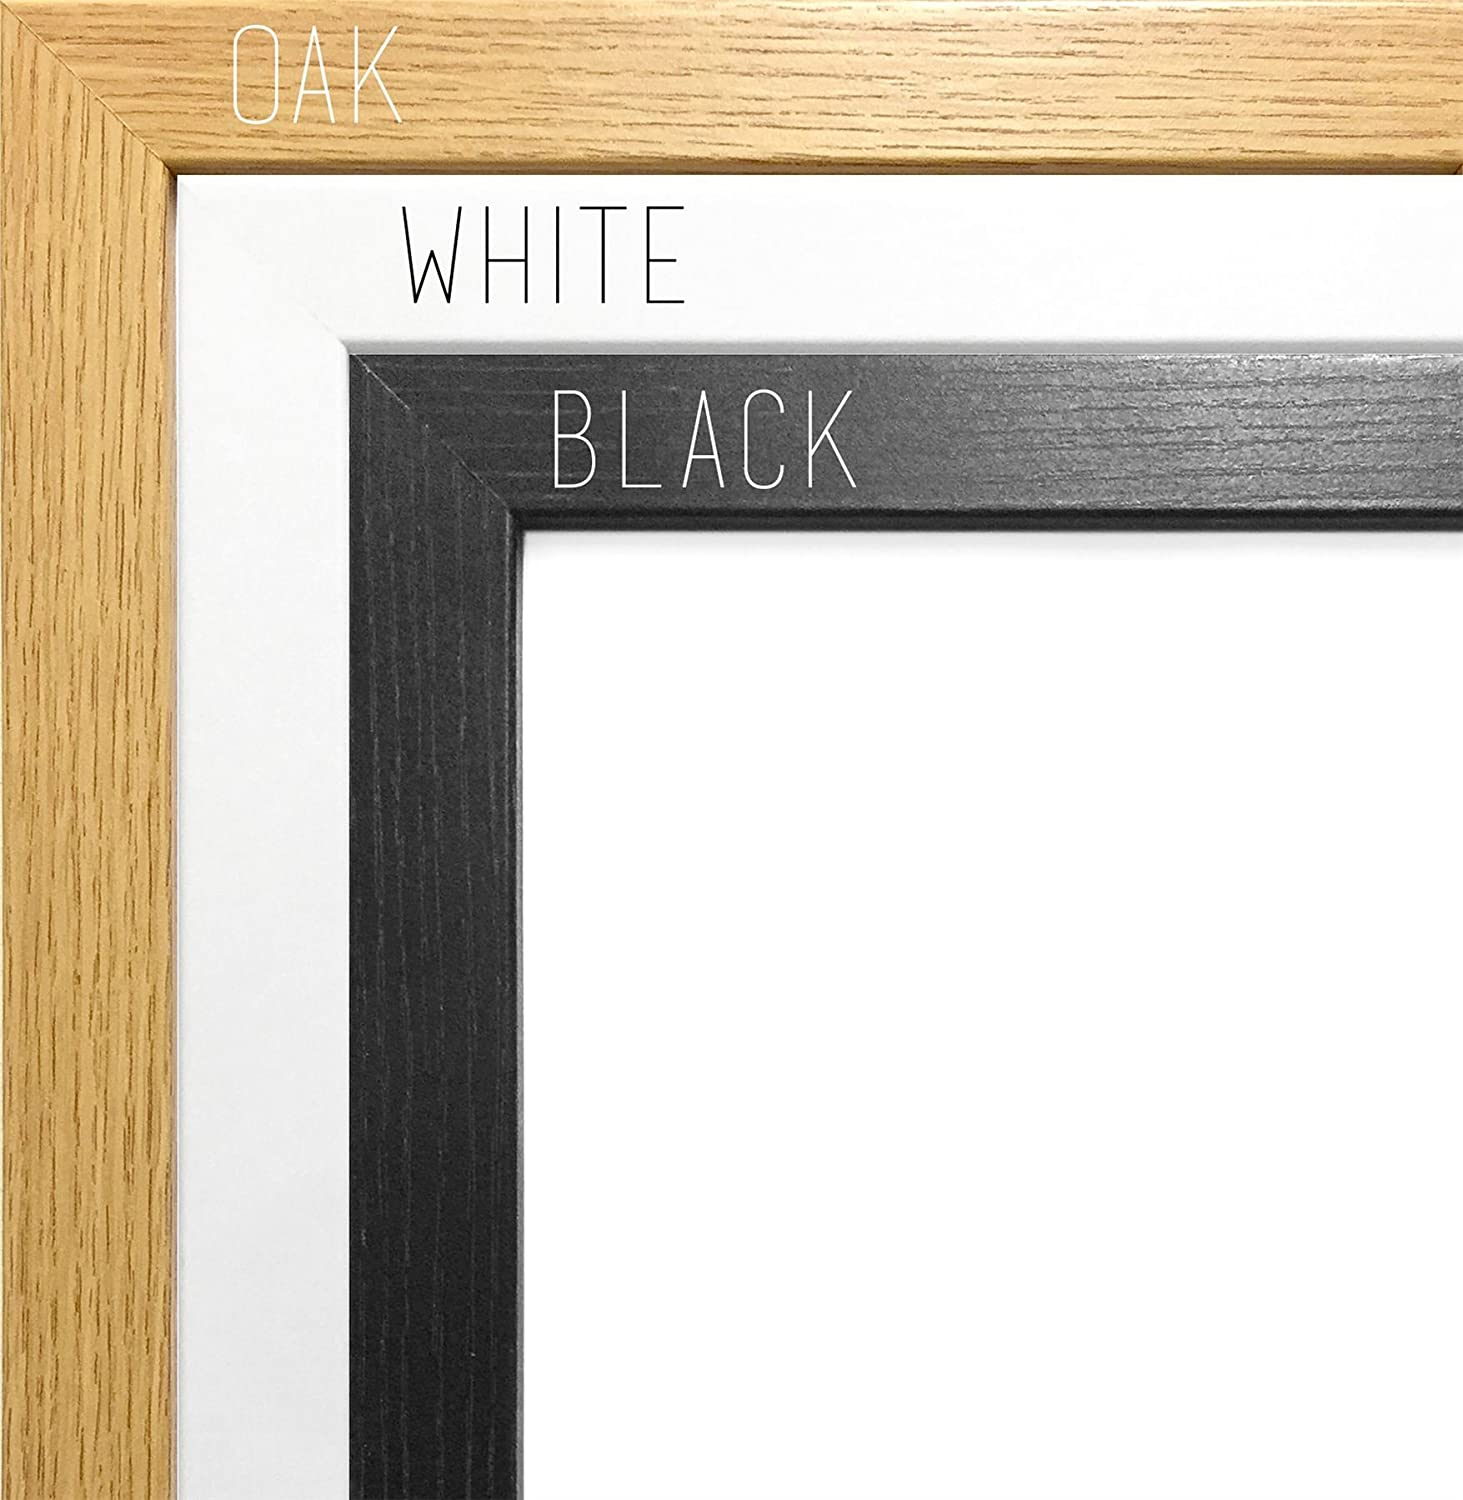 12X9 BLACK COLOUR MODERN BOX FRAMES WOOD FINISH PHOTO PICTURE POSTER ...